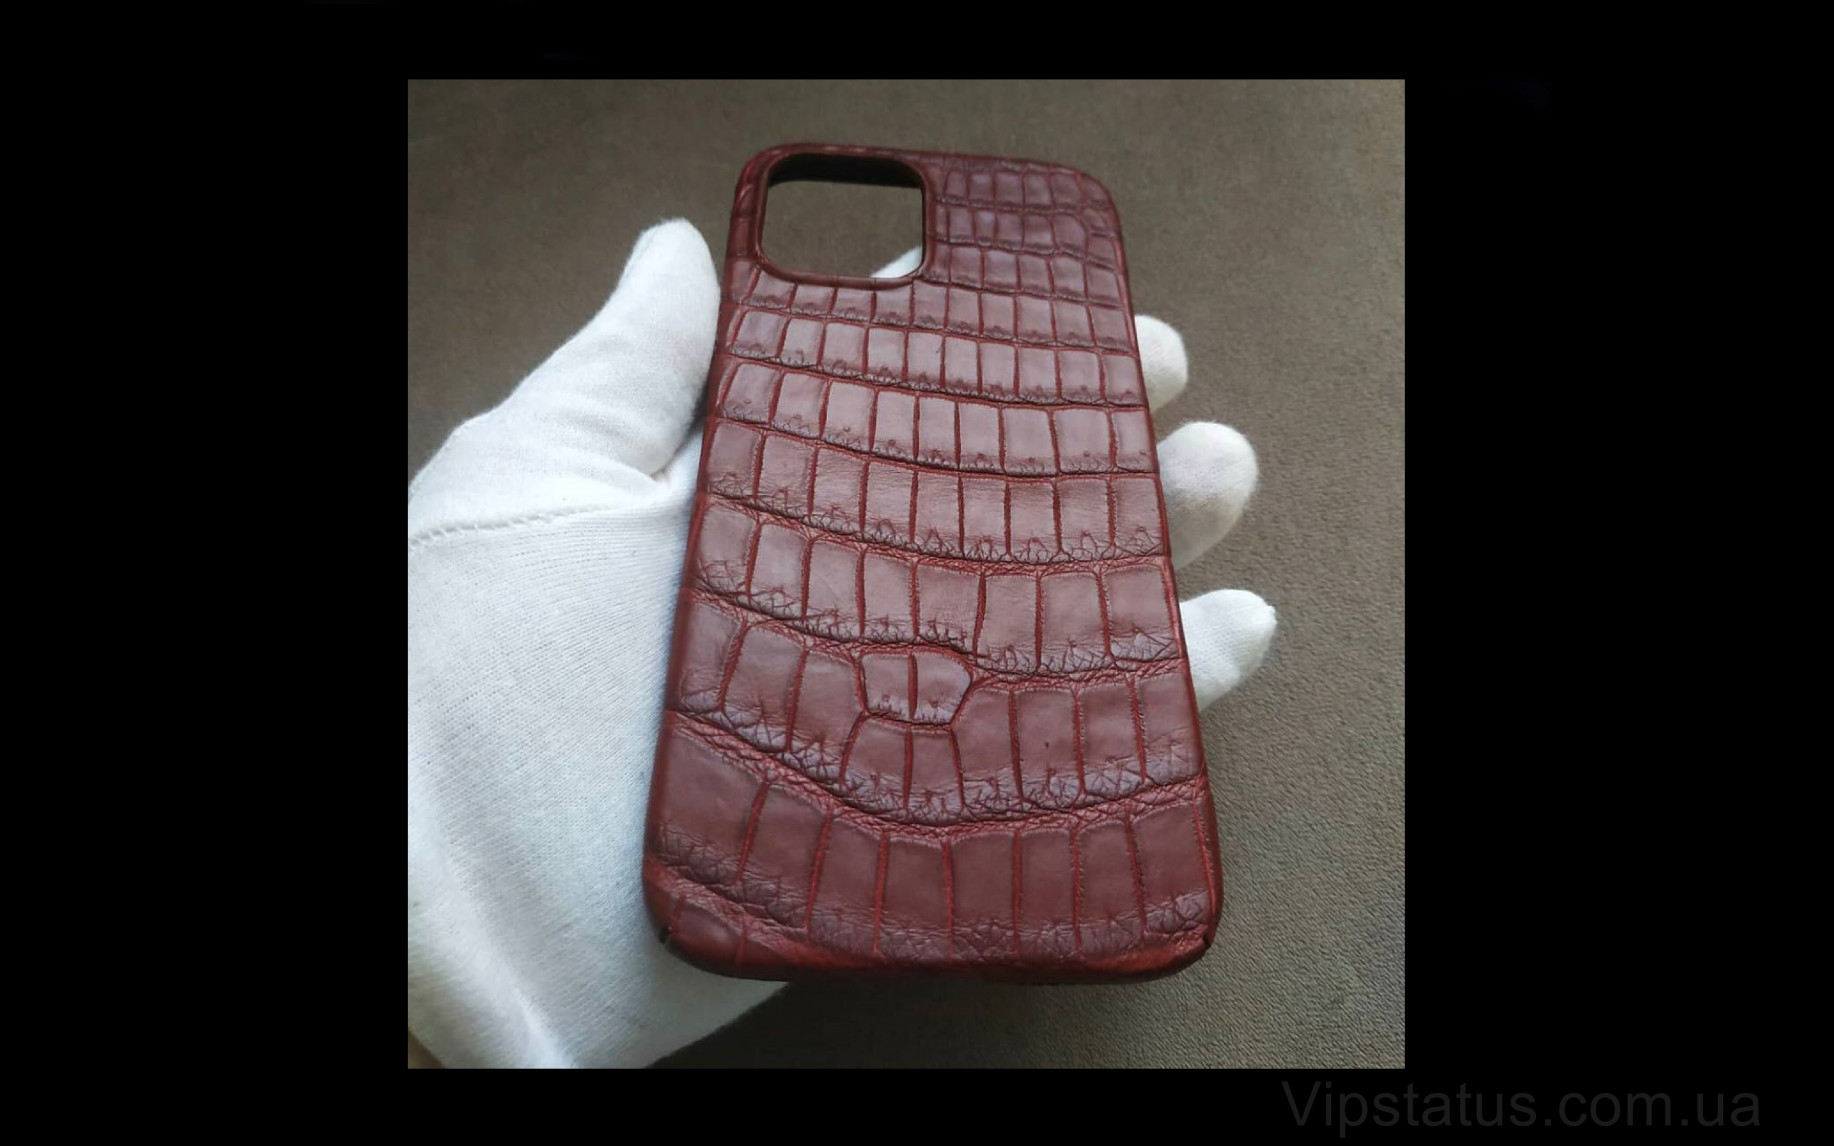 Elite Cherry Edition Элитный чехол IPhone 11 12 Pro Max Cherry Edition Elite case IPhone 11 12 Pro Max Crocodile leather image 3